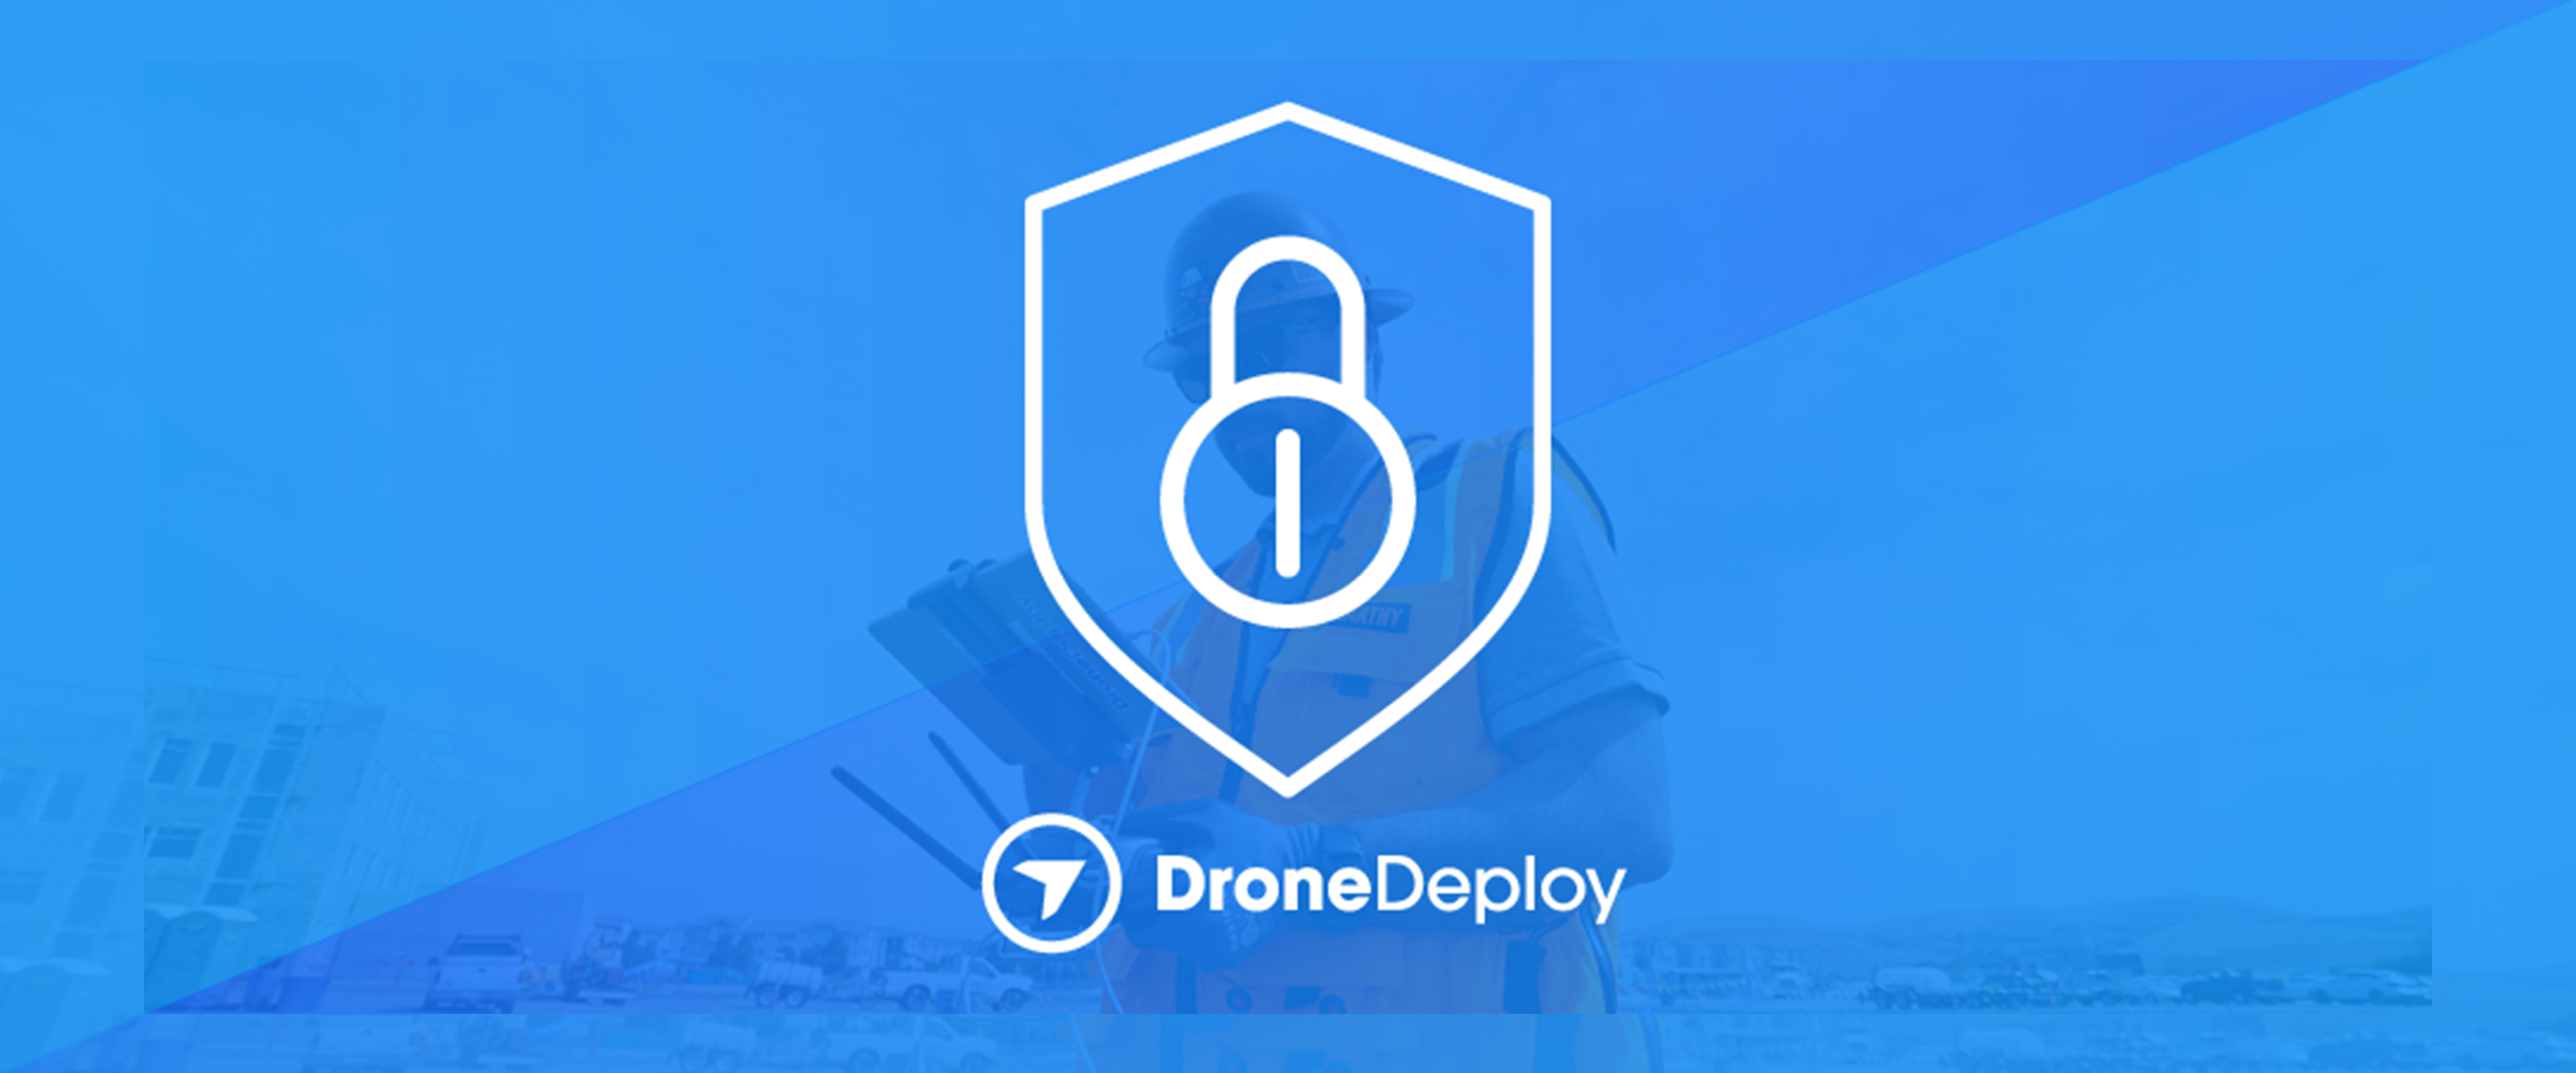 Exploring container security: How DroneDeploy achieved ISO